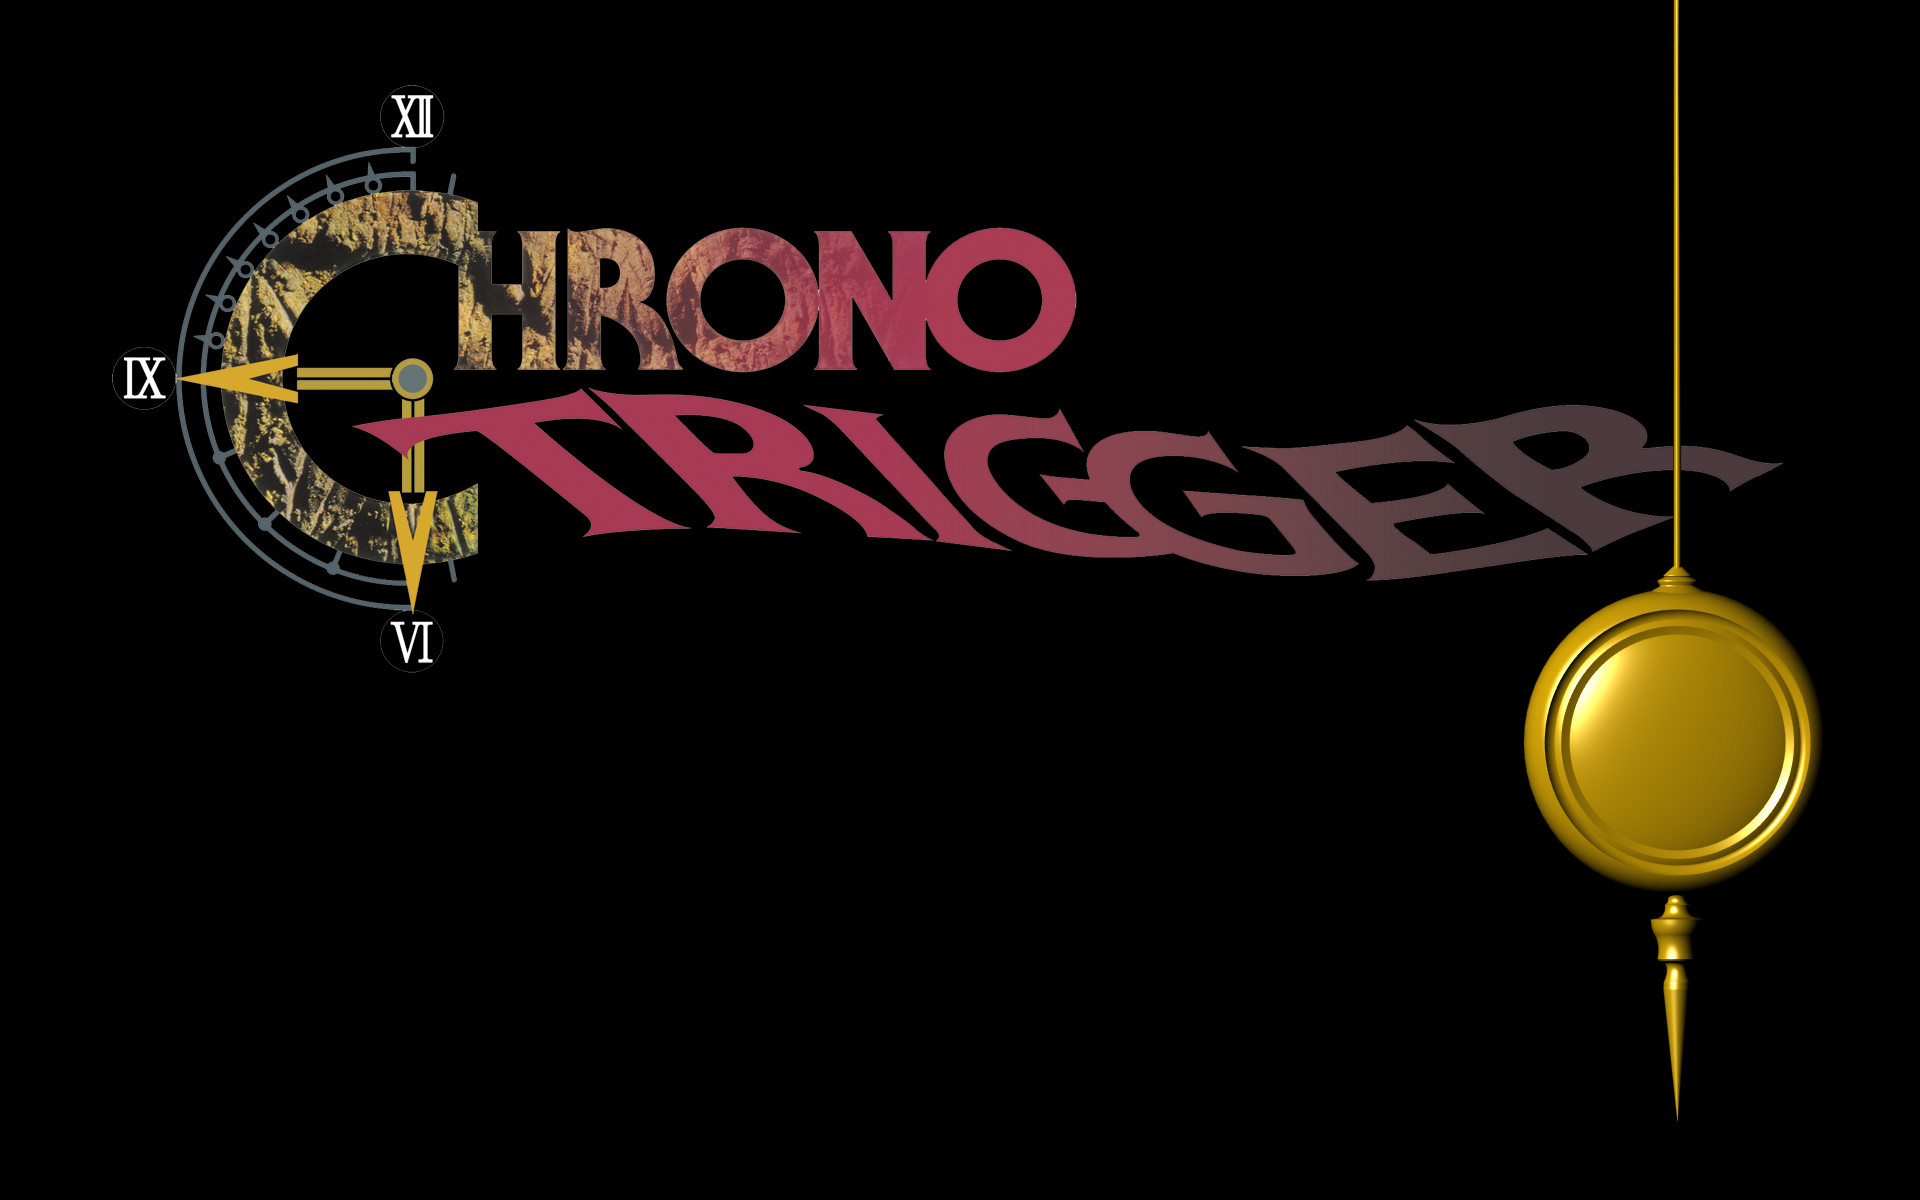 Res: 1920x1200, Pics In High Quality: Chrono Trigger Wallpapers by Andy Mcneilly, 30 March  2018